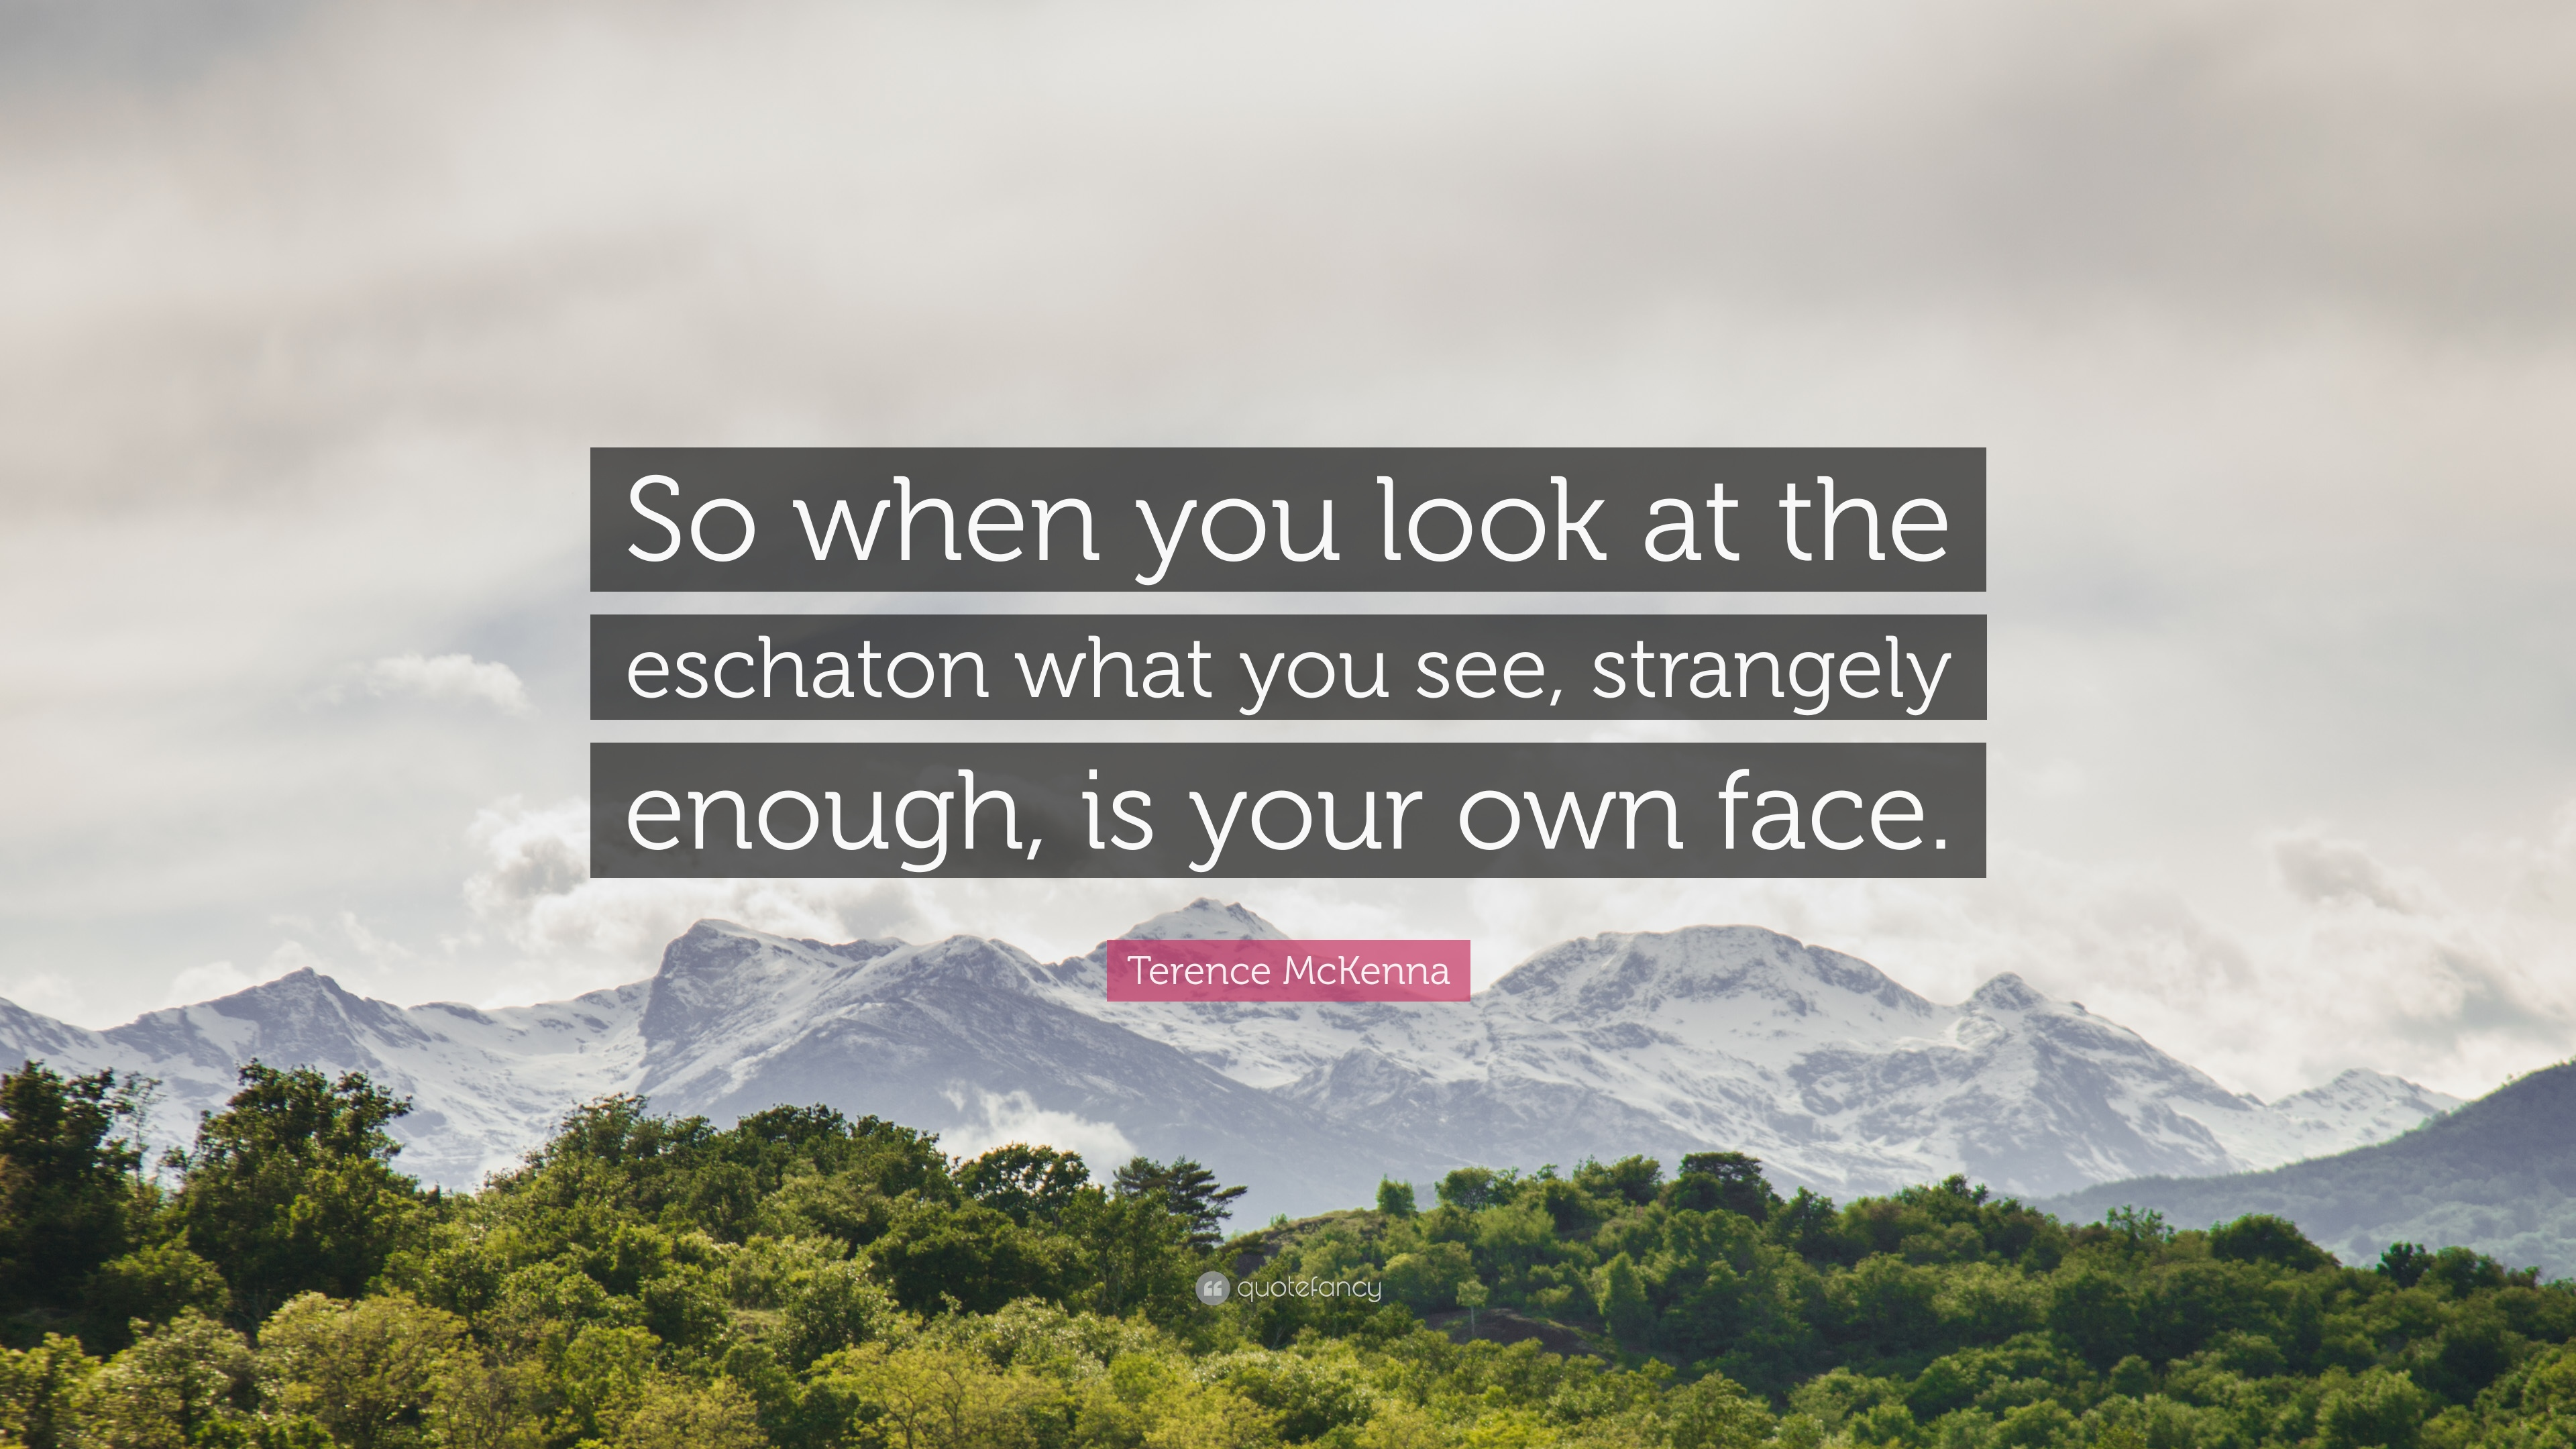 Terence Mckenna Quote So When You Look At The Eschaton What You